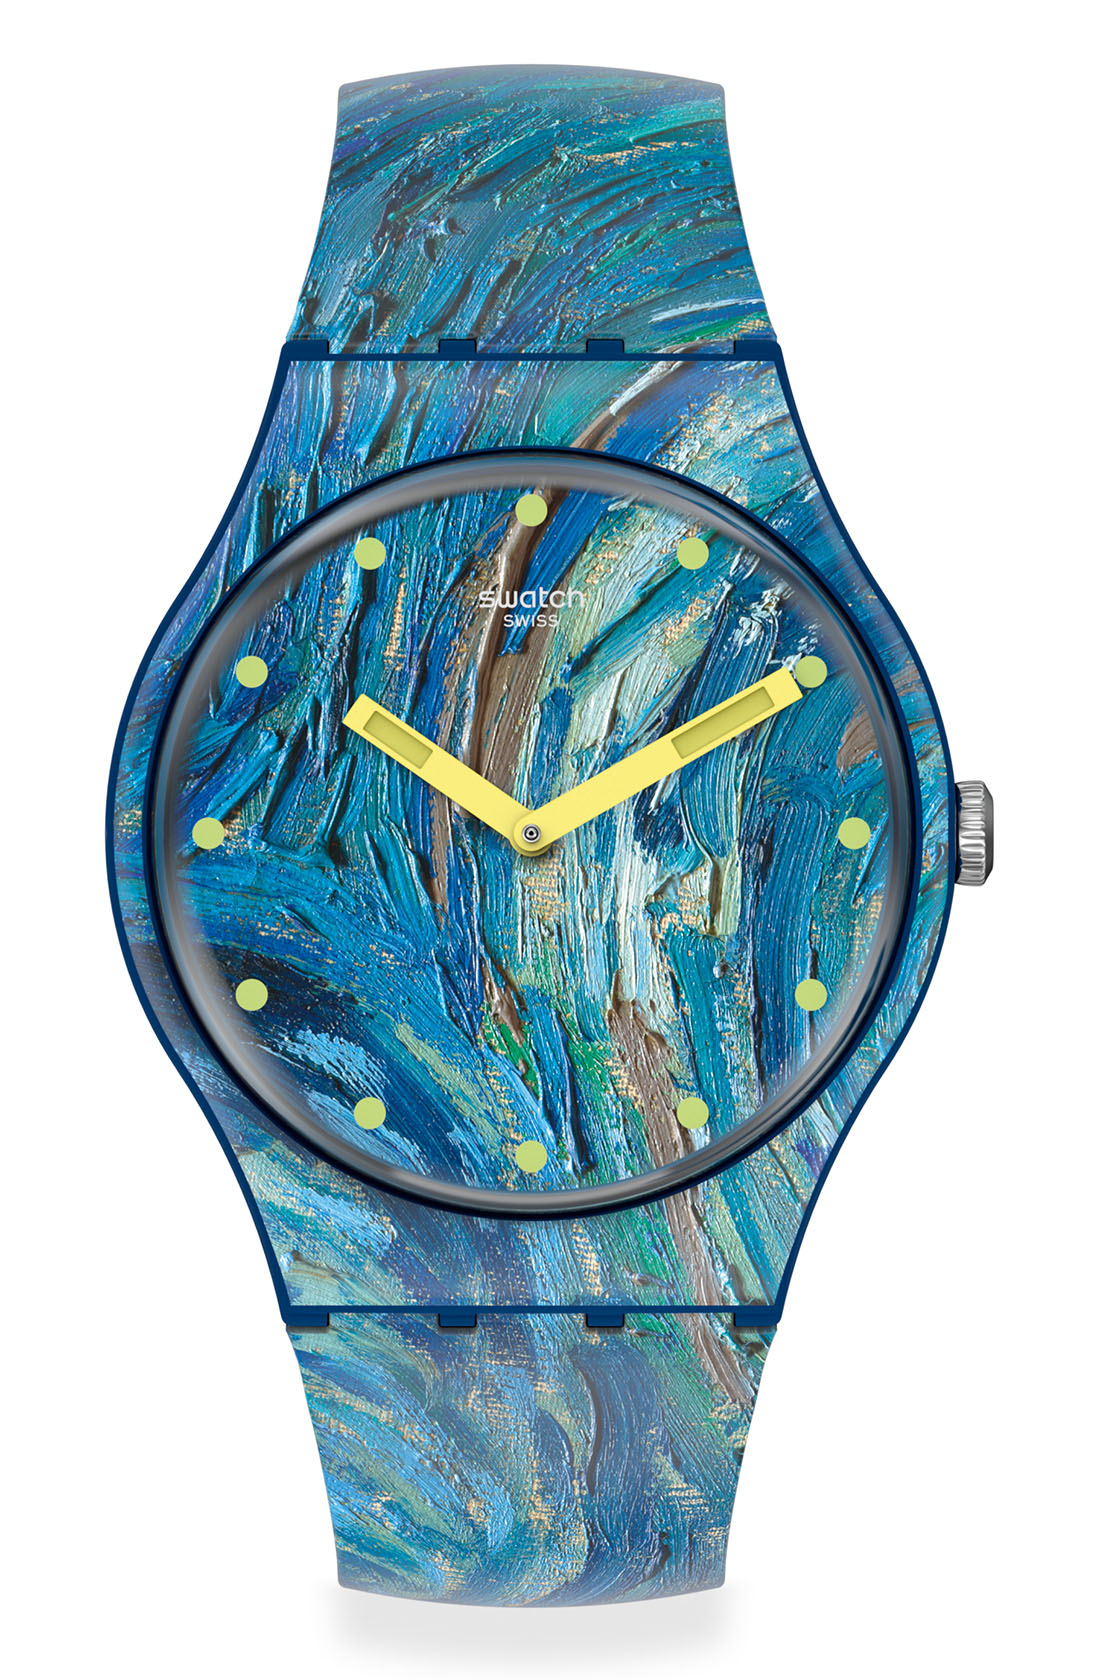 Swatch x MoMA New York - The Starry Night